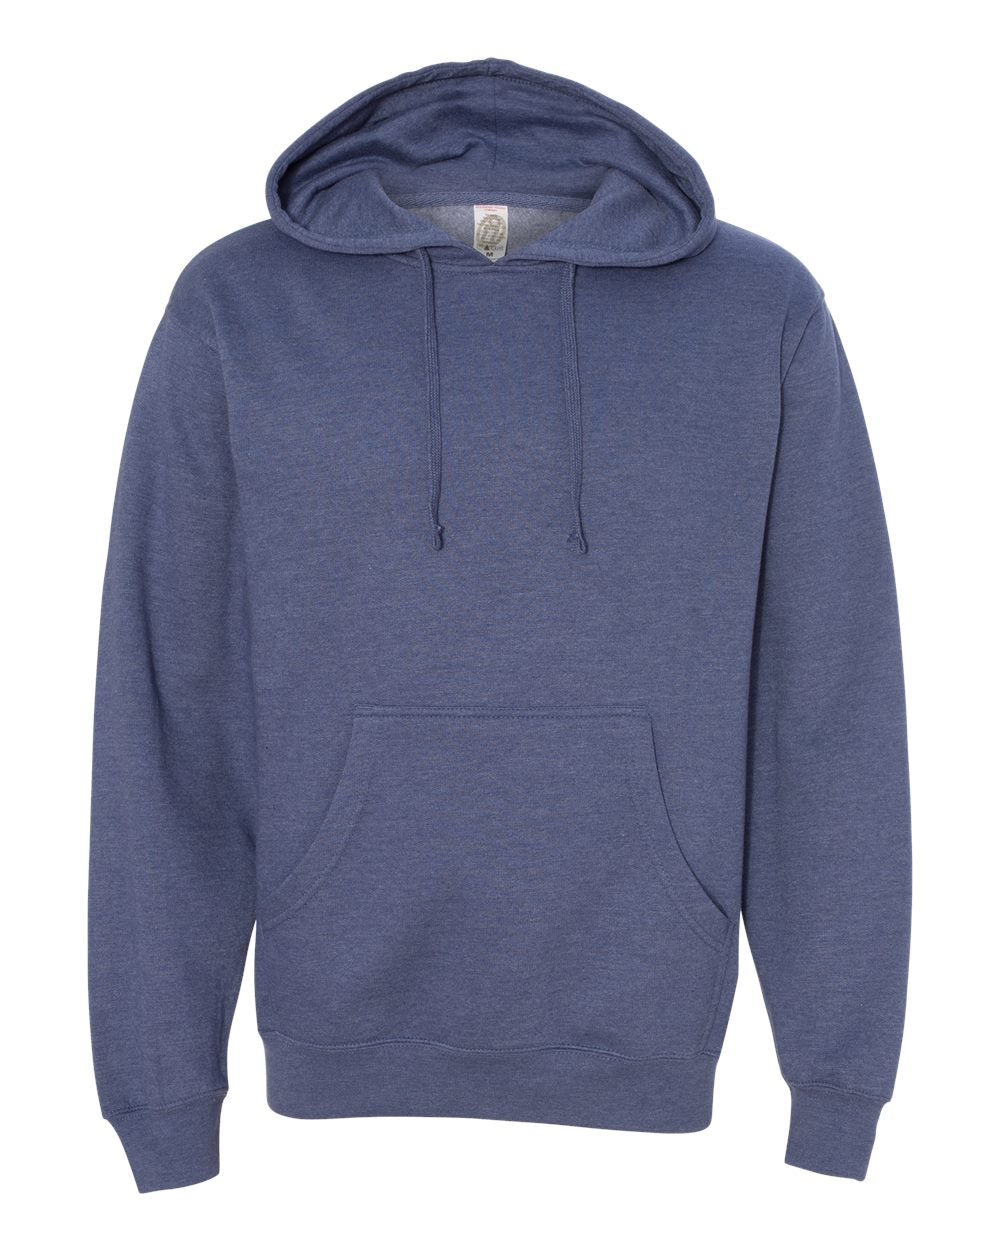 Independent - Midweight Hooded Pullover Sweatshirt - Silkscreen - SS4500